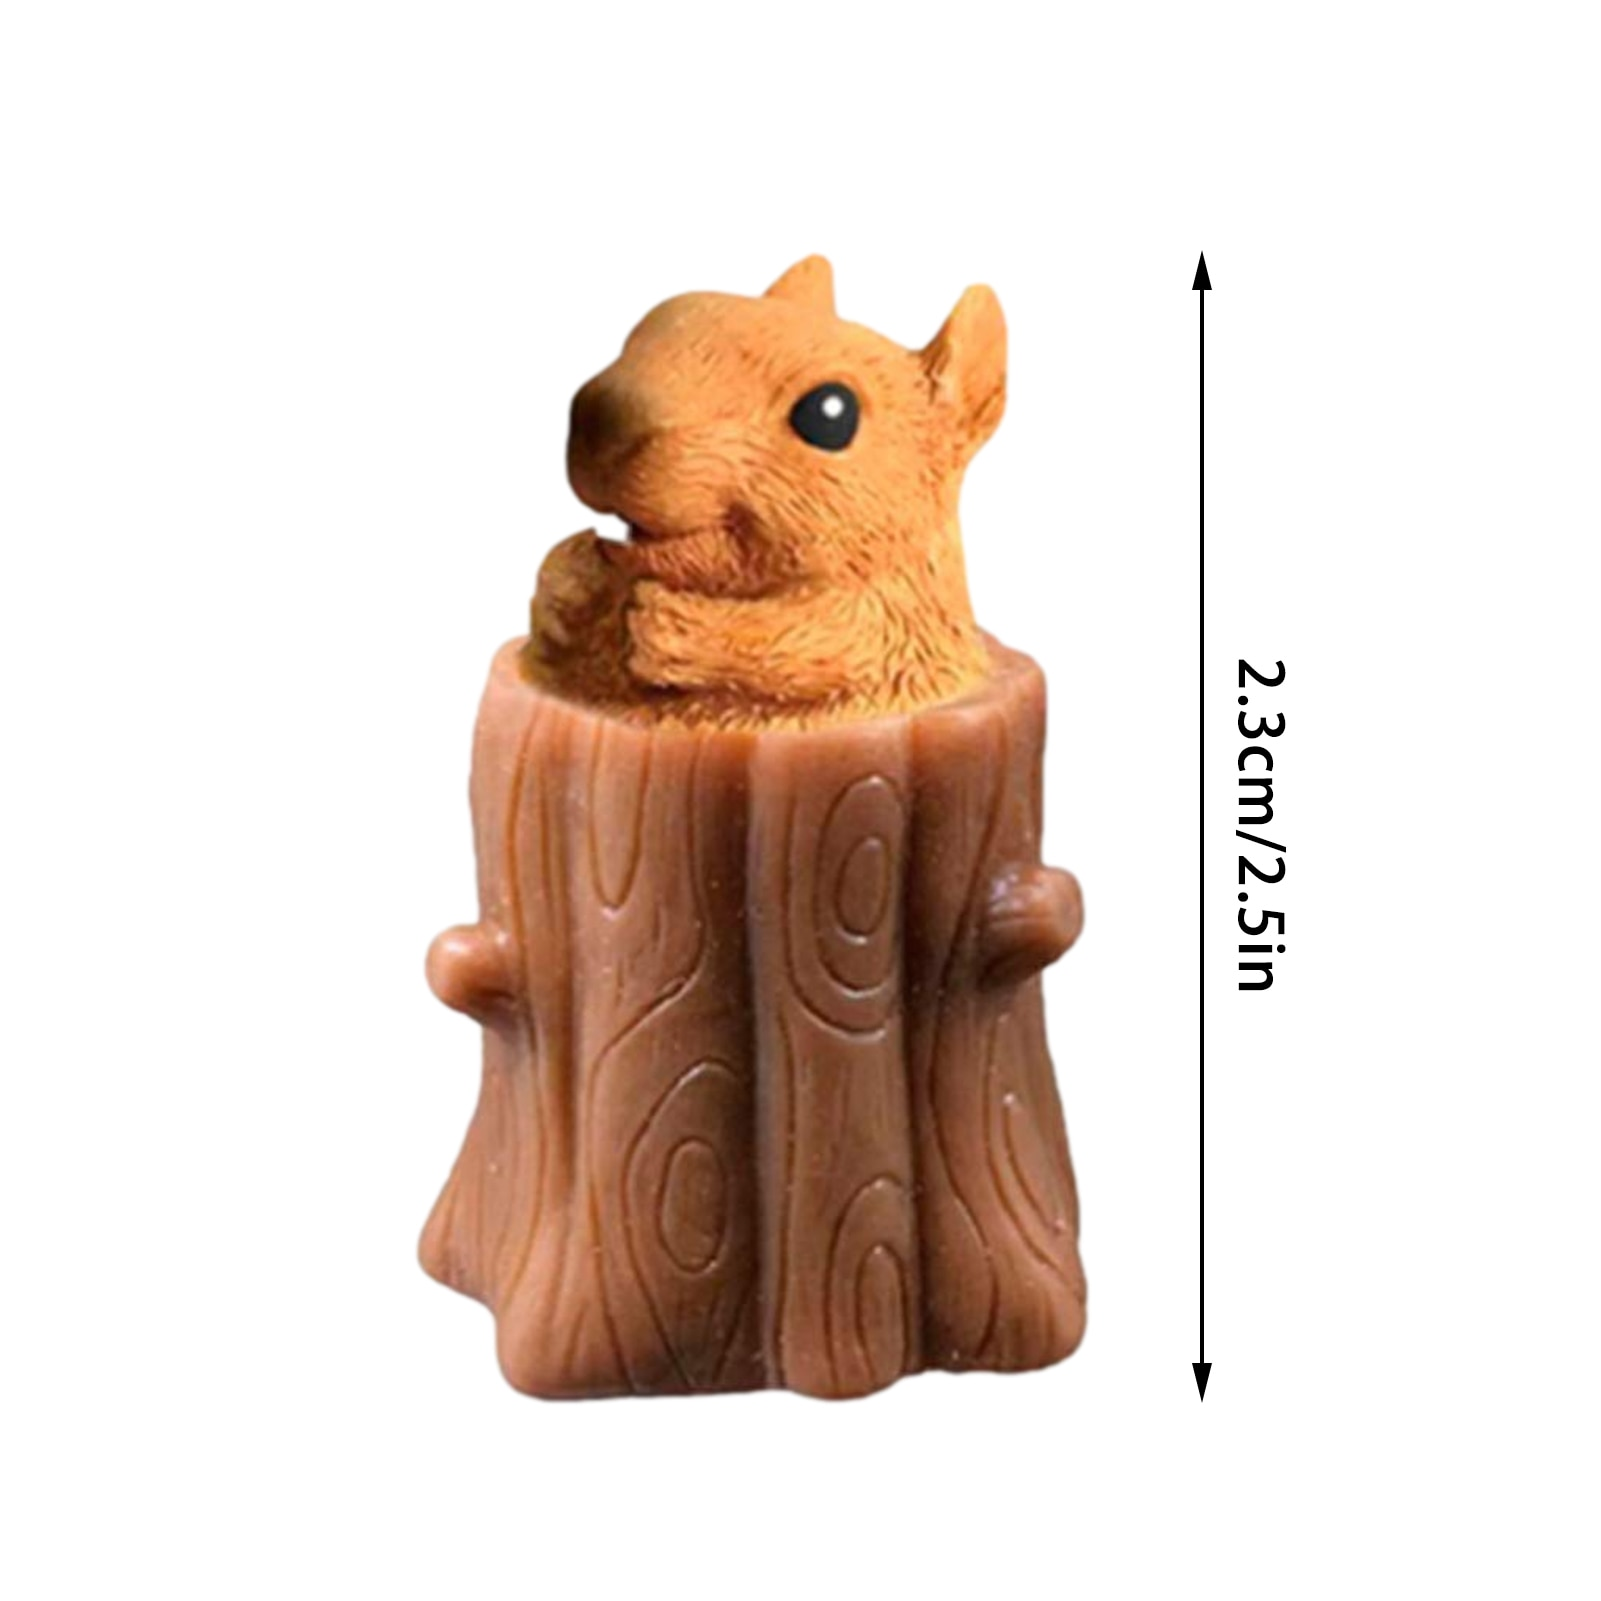 Cute Squirrel Vent Cup Decompression Toy Animal Squirrel Squeeze Pen Holder Stump Rubber Stake Fidget Toys Gift For Kids enlarge